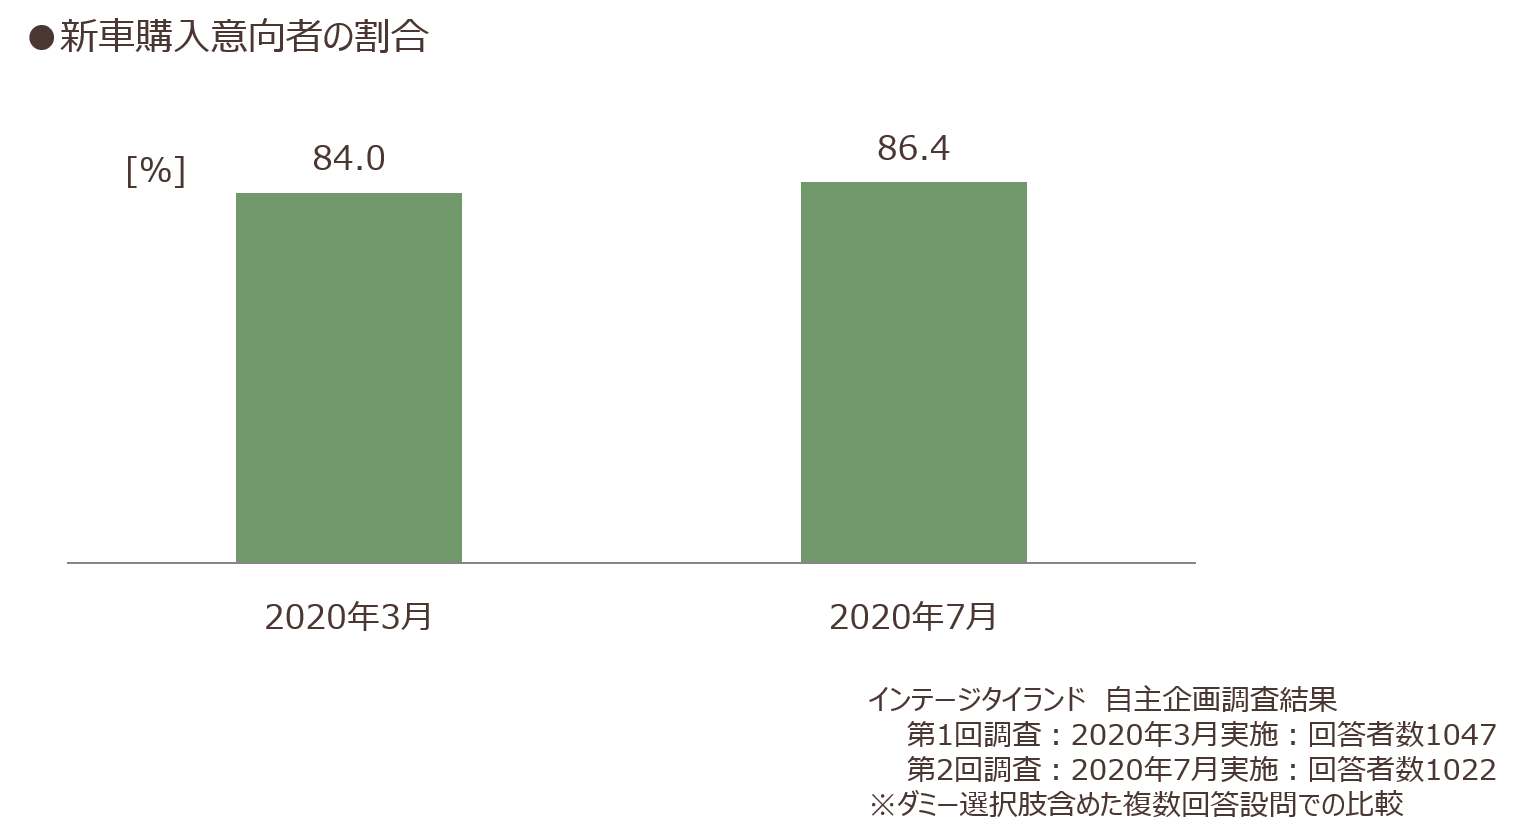 asia-carbusiness-3_01.png